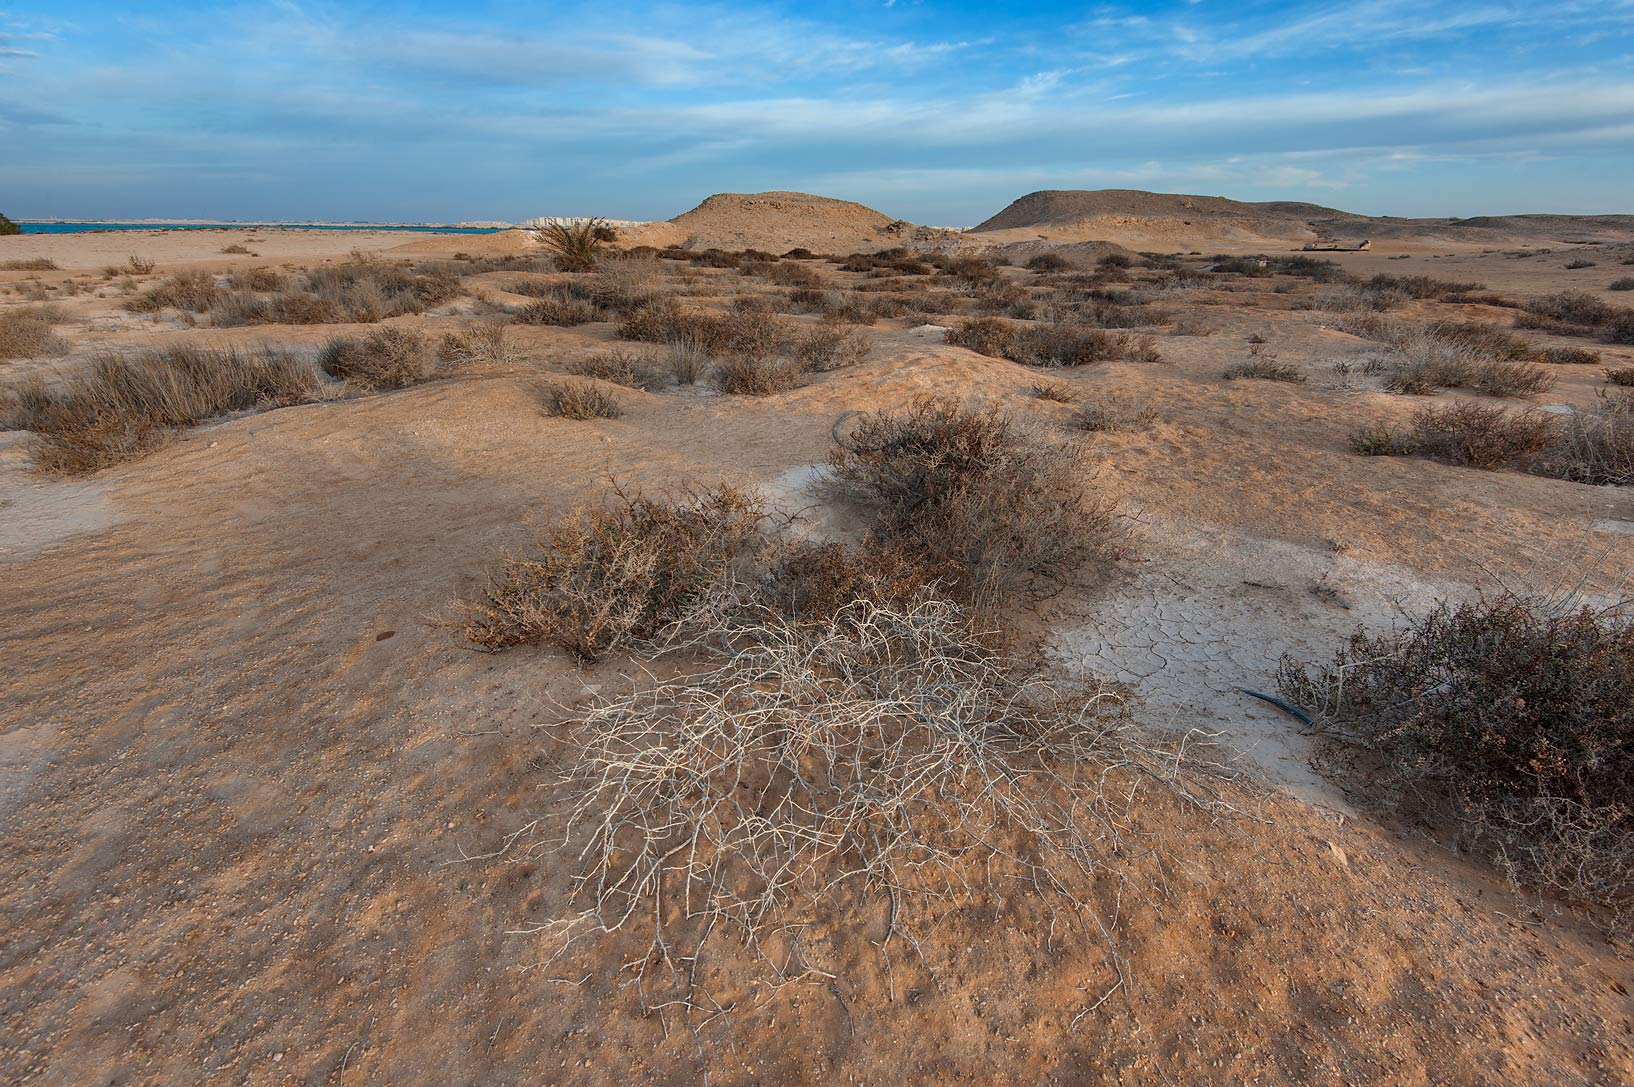 Shallow depression in Purple Island (Jazirat Bin Ghanim). Al Khor, Qatar